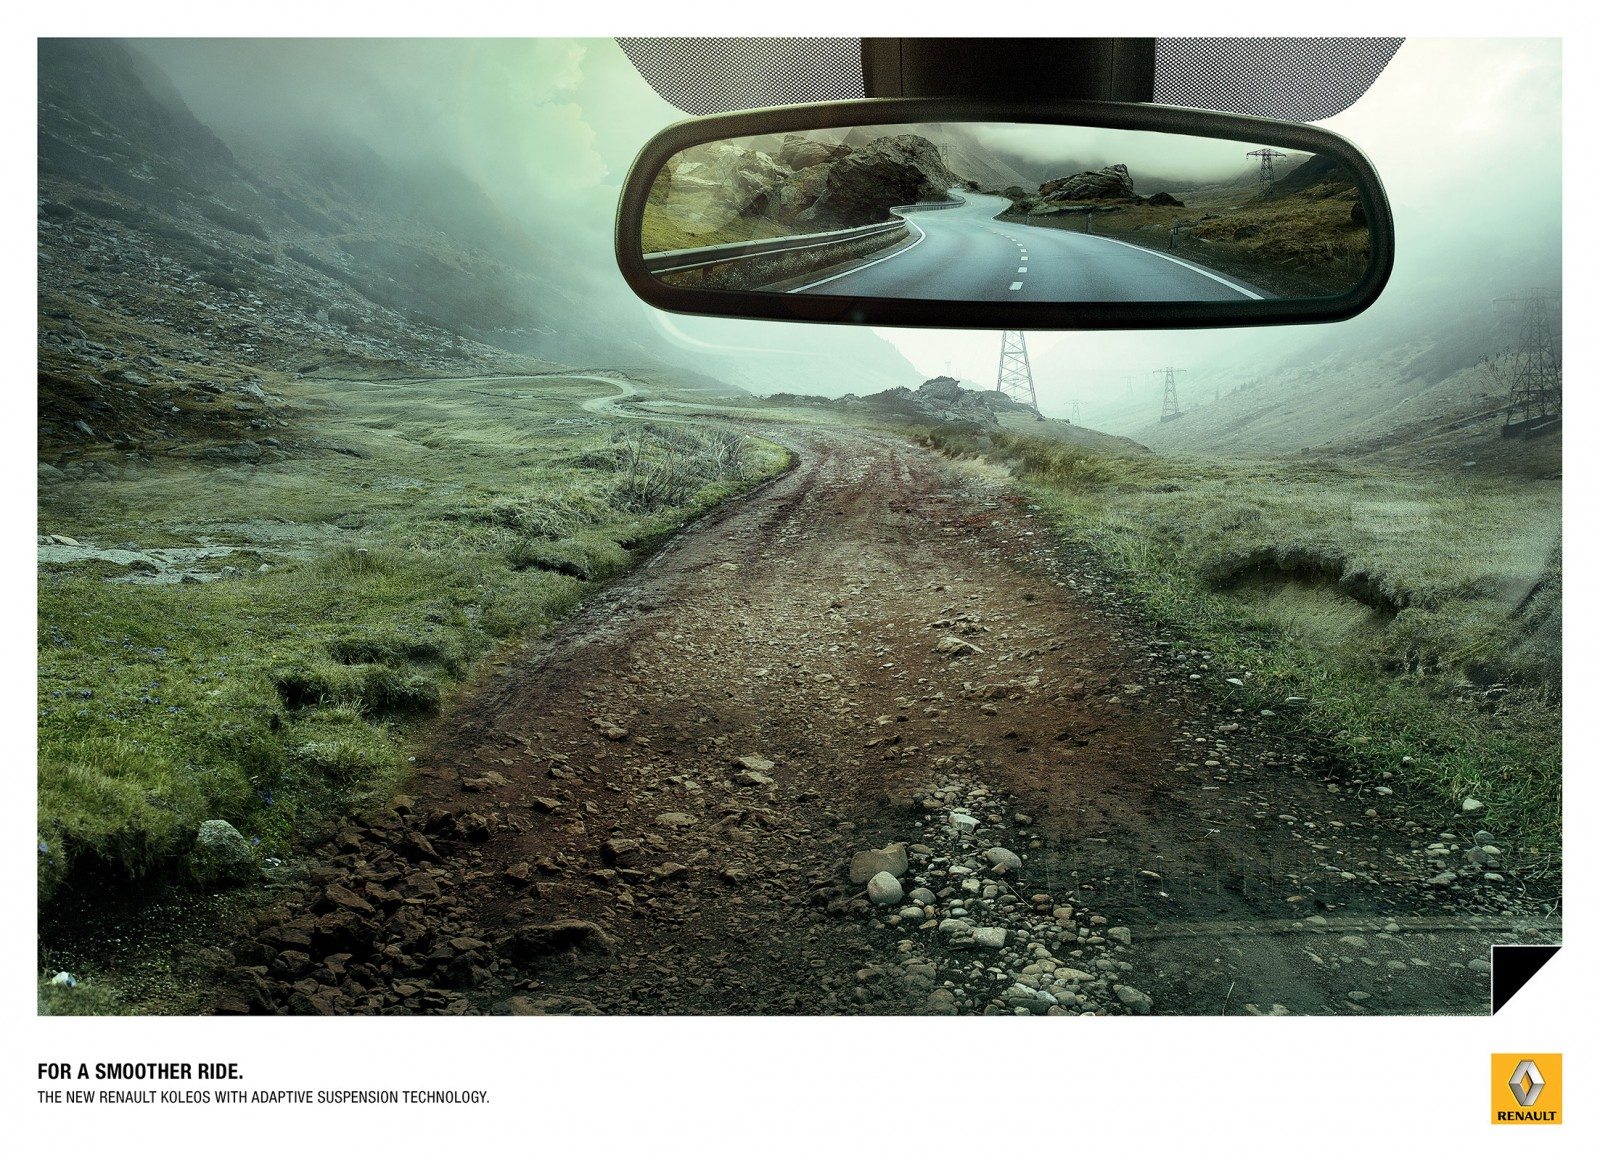 Renault Kaleos: Rear-view mirror - Adeevee